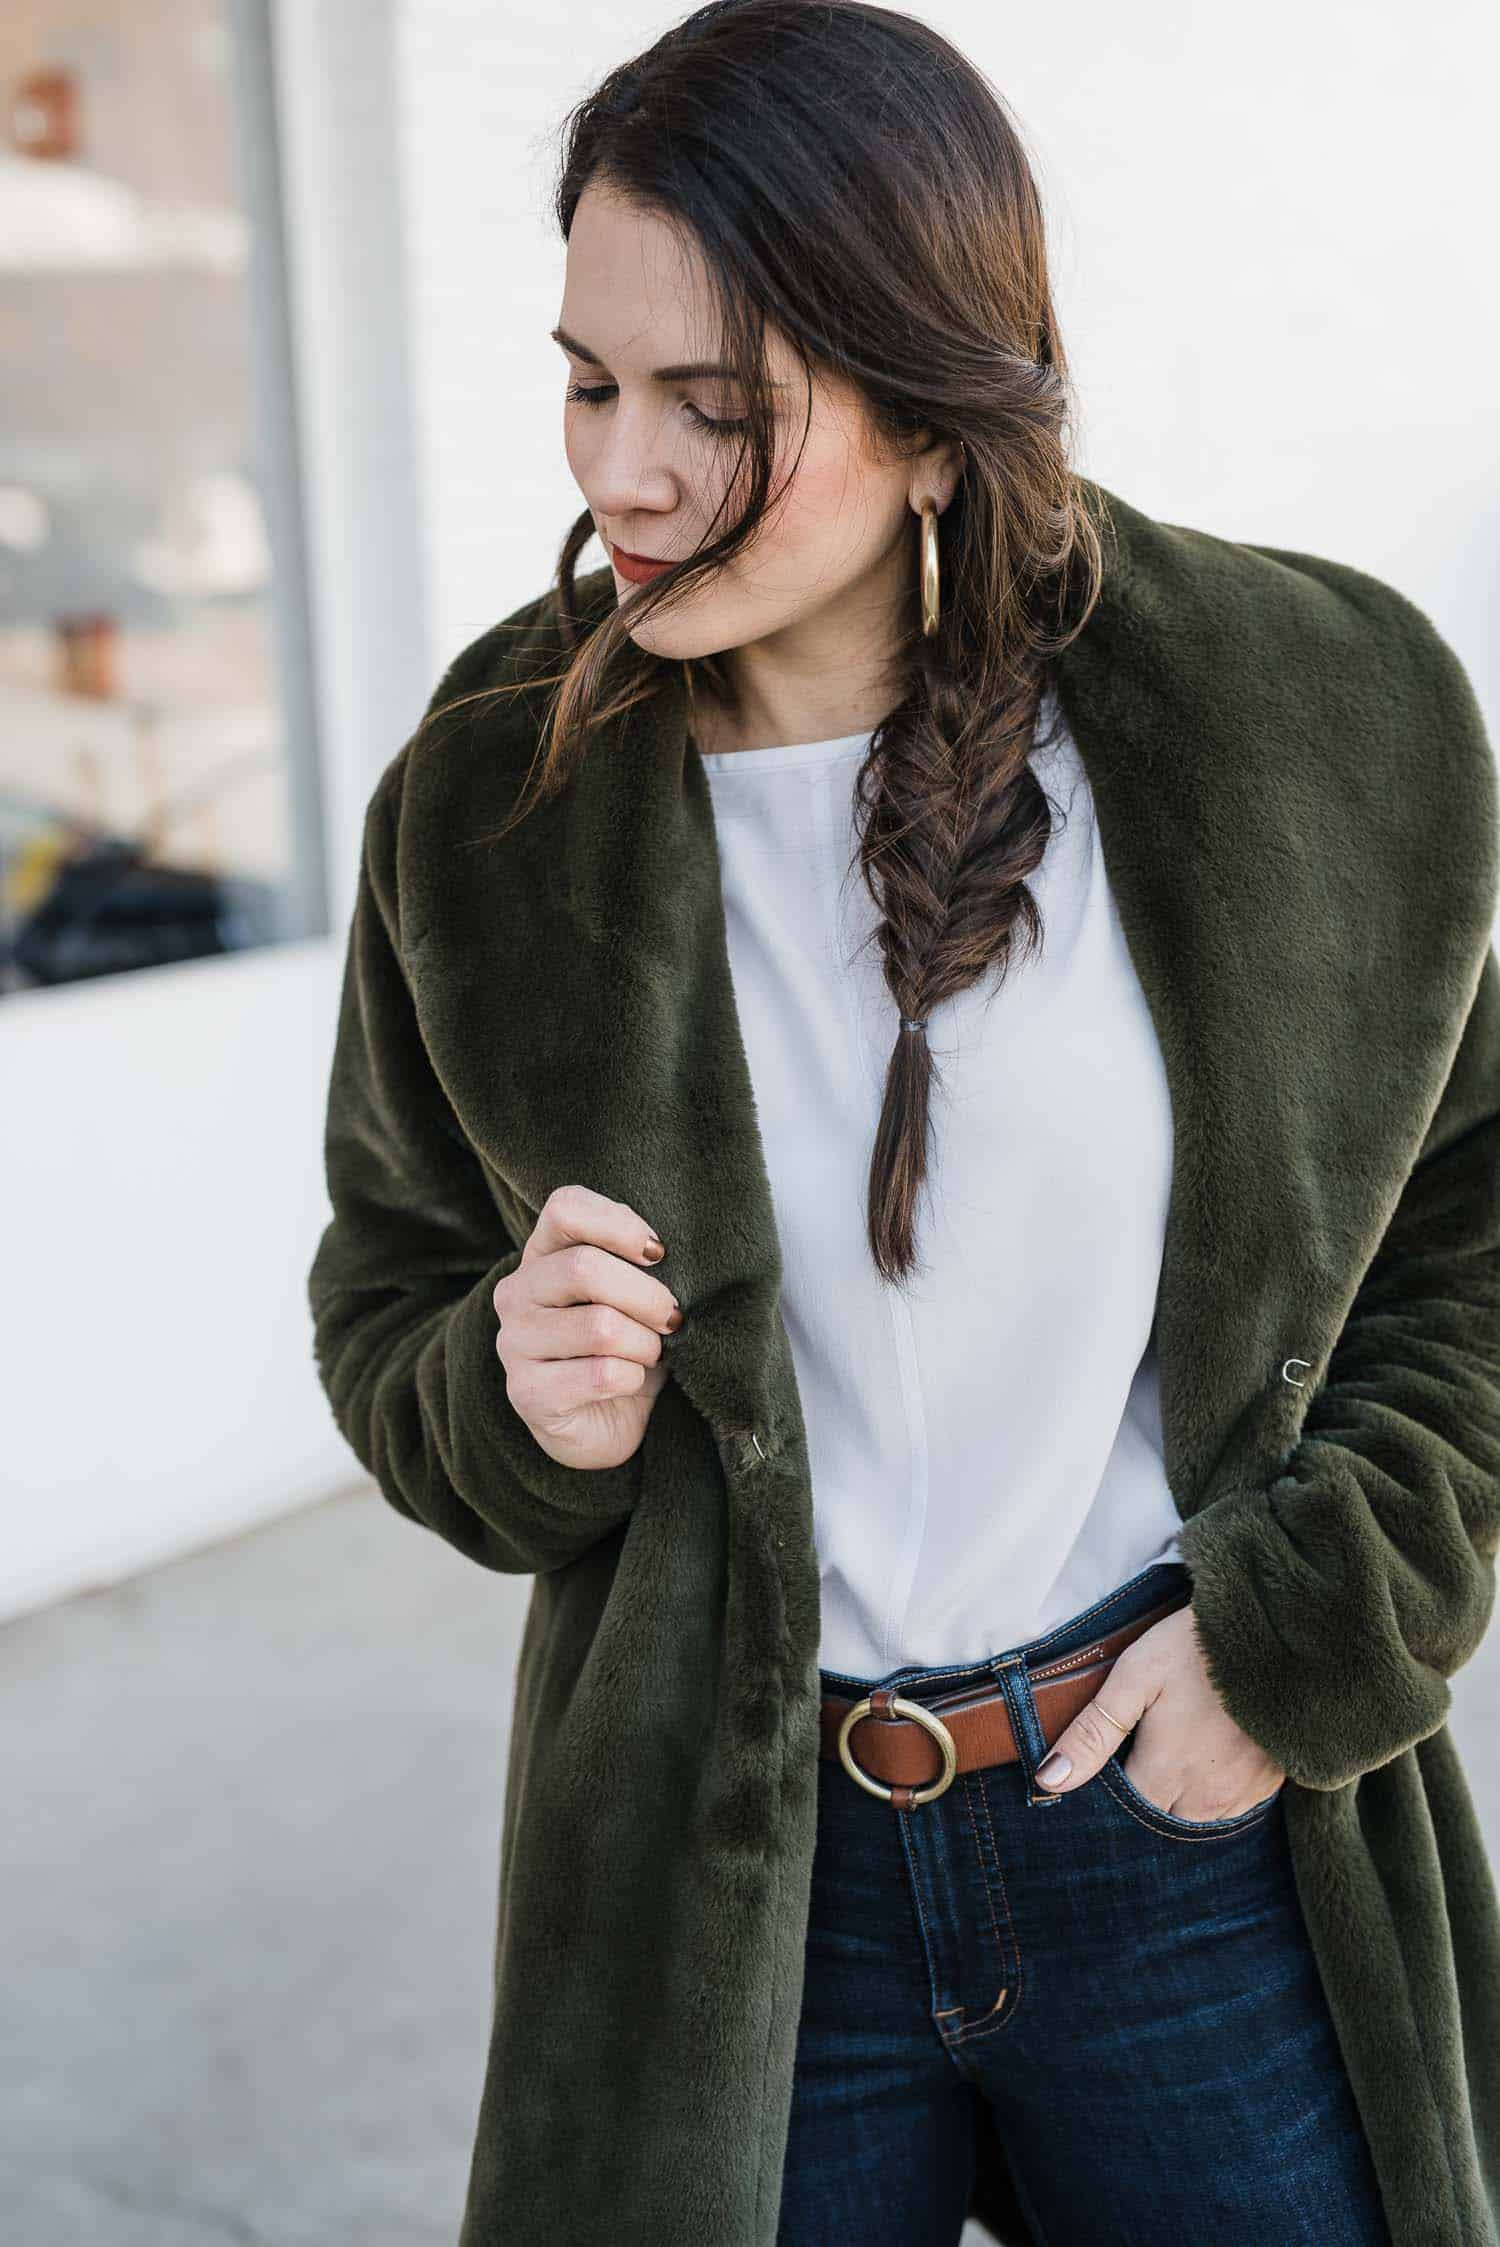 Faux Fur Coat, White Tee, Belt and Jeans